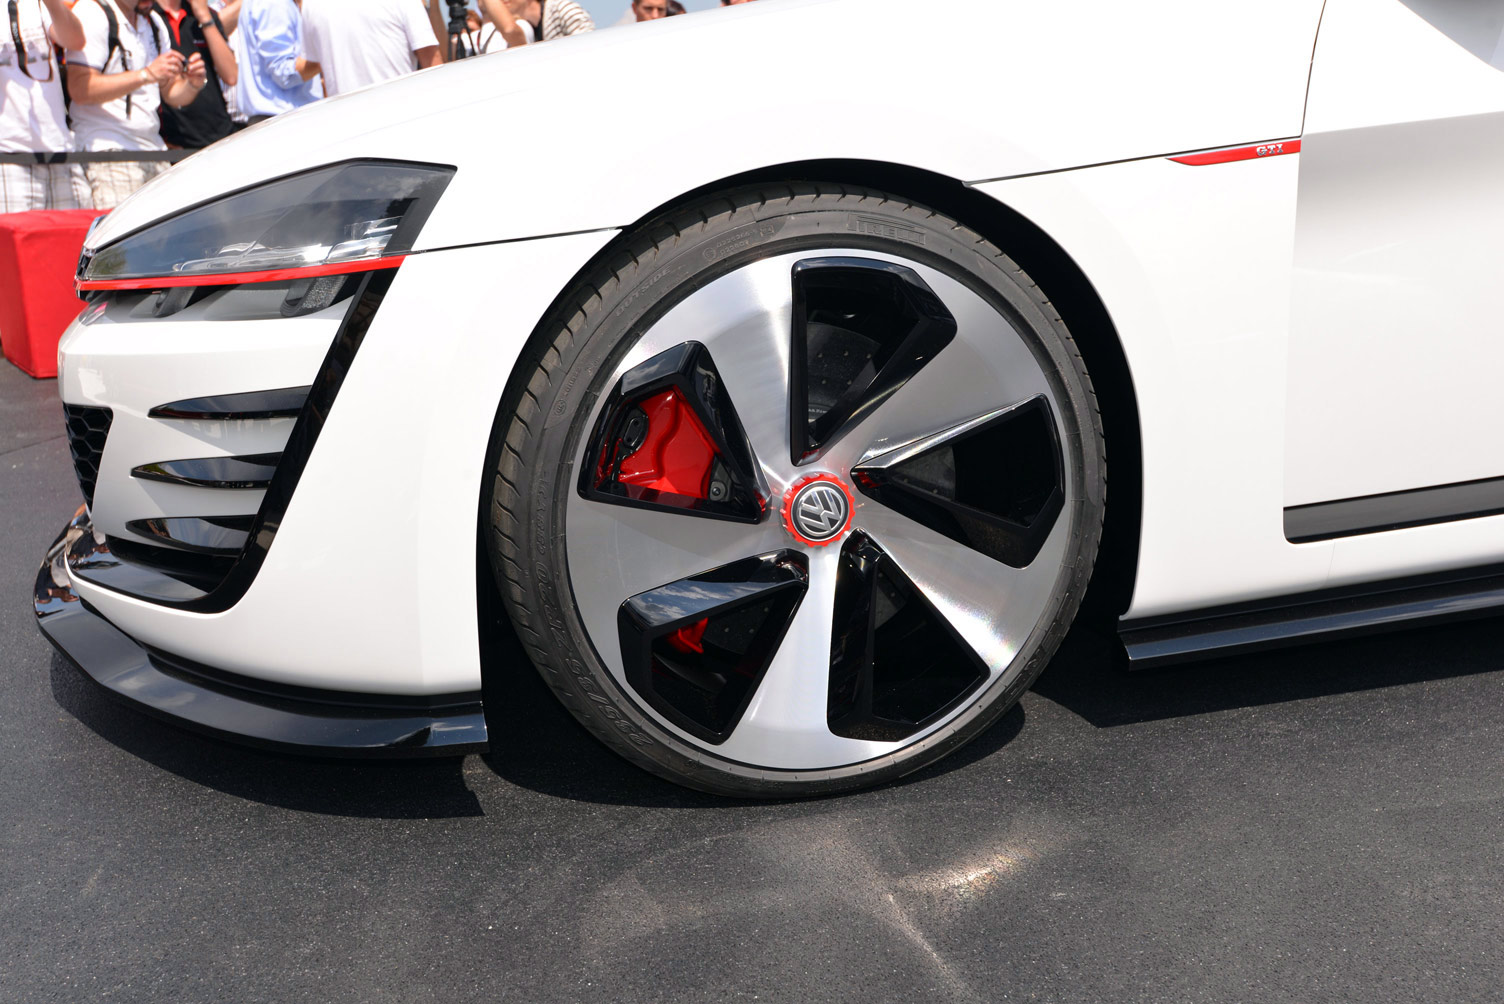 volkswagen-design-vision-gti-worthersee-043